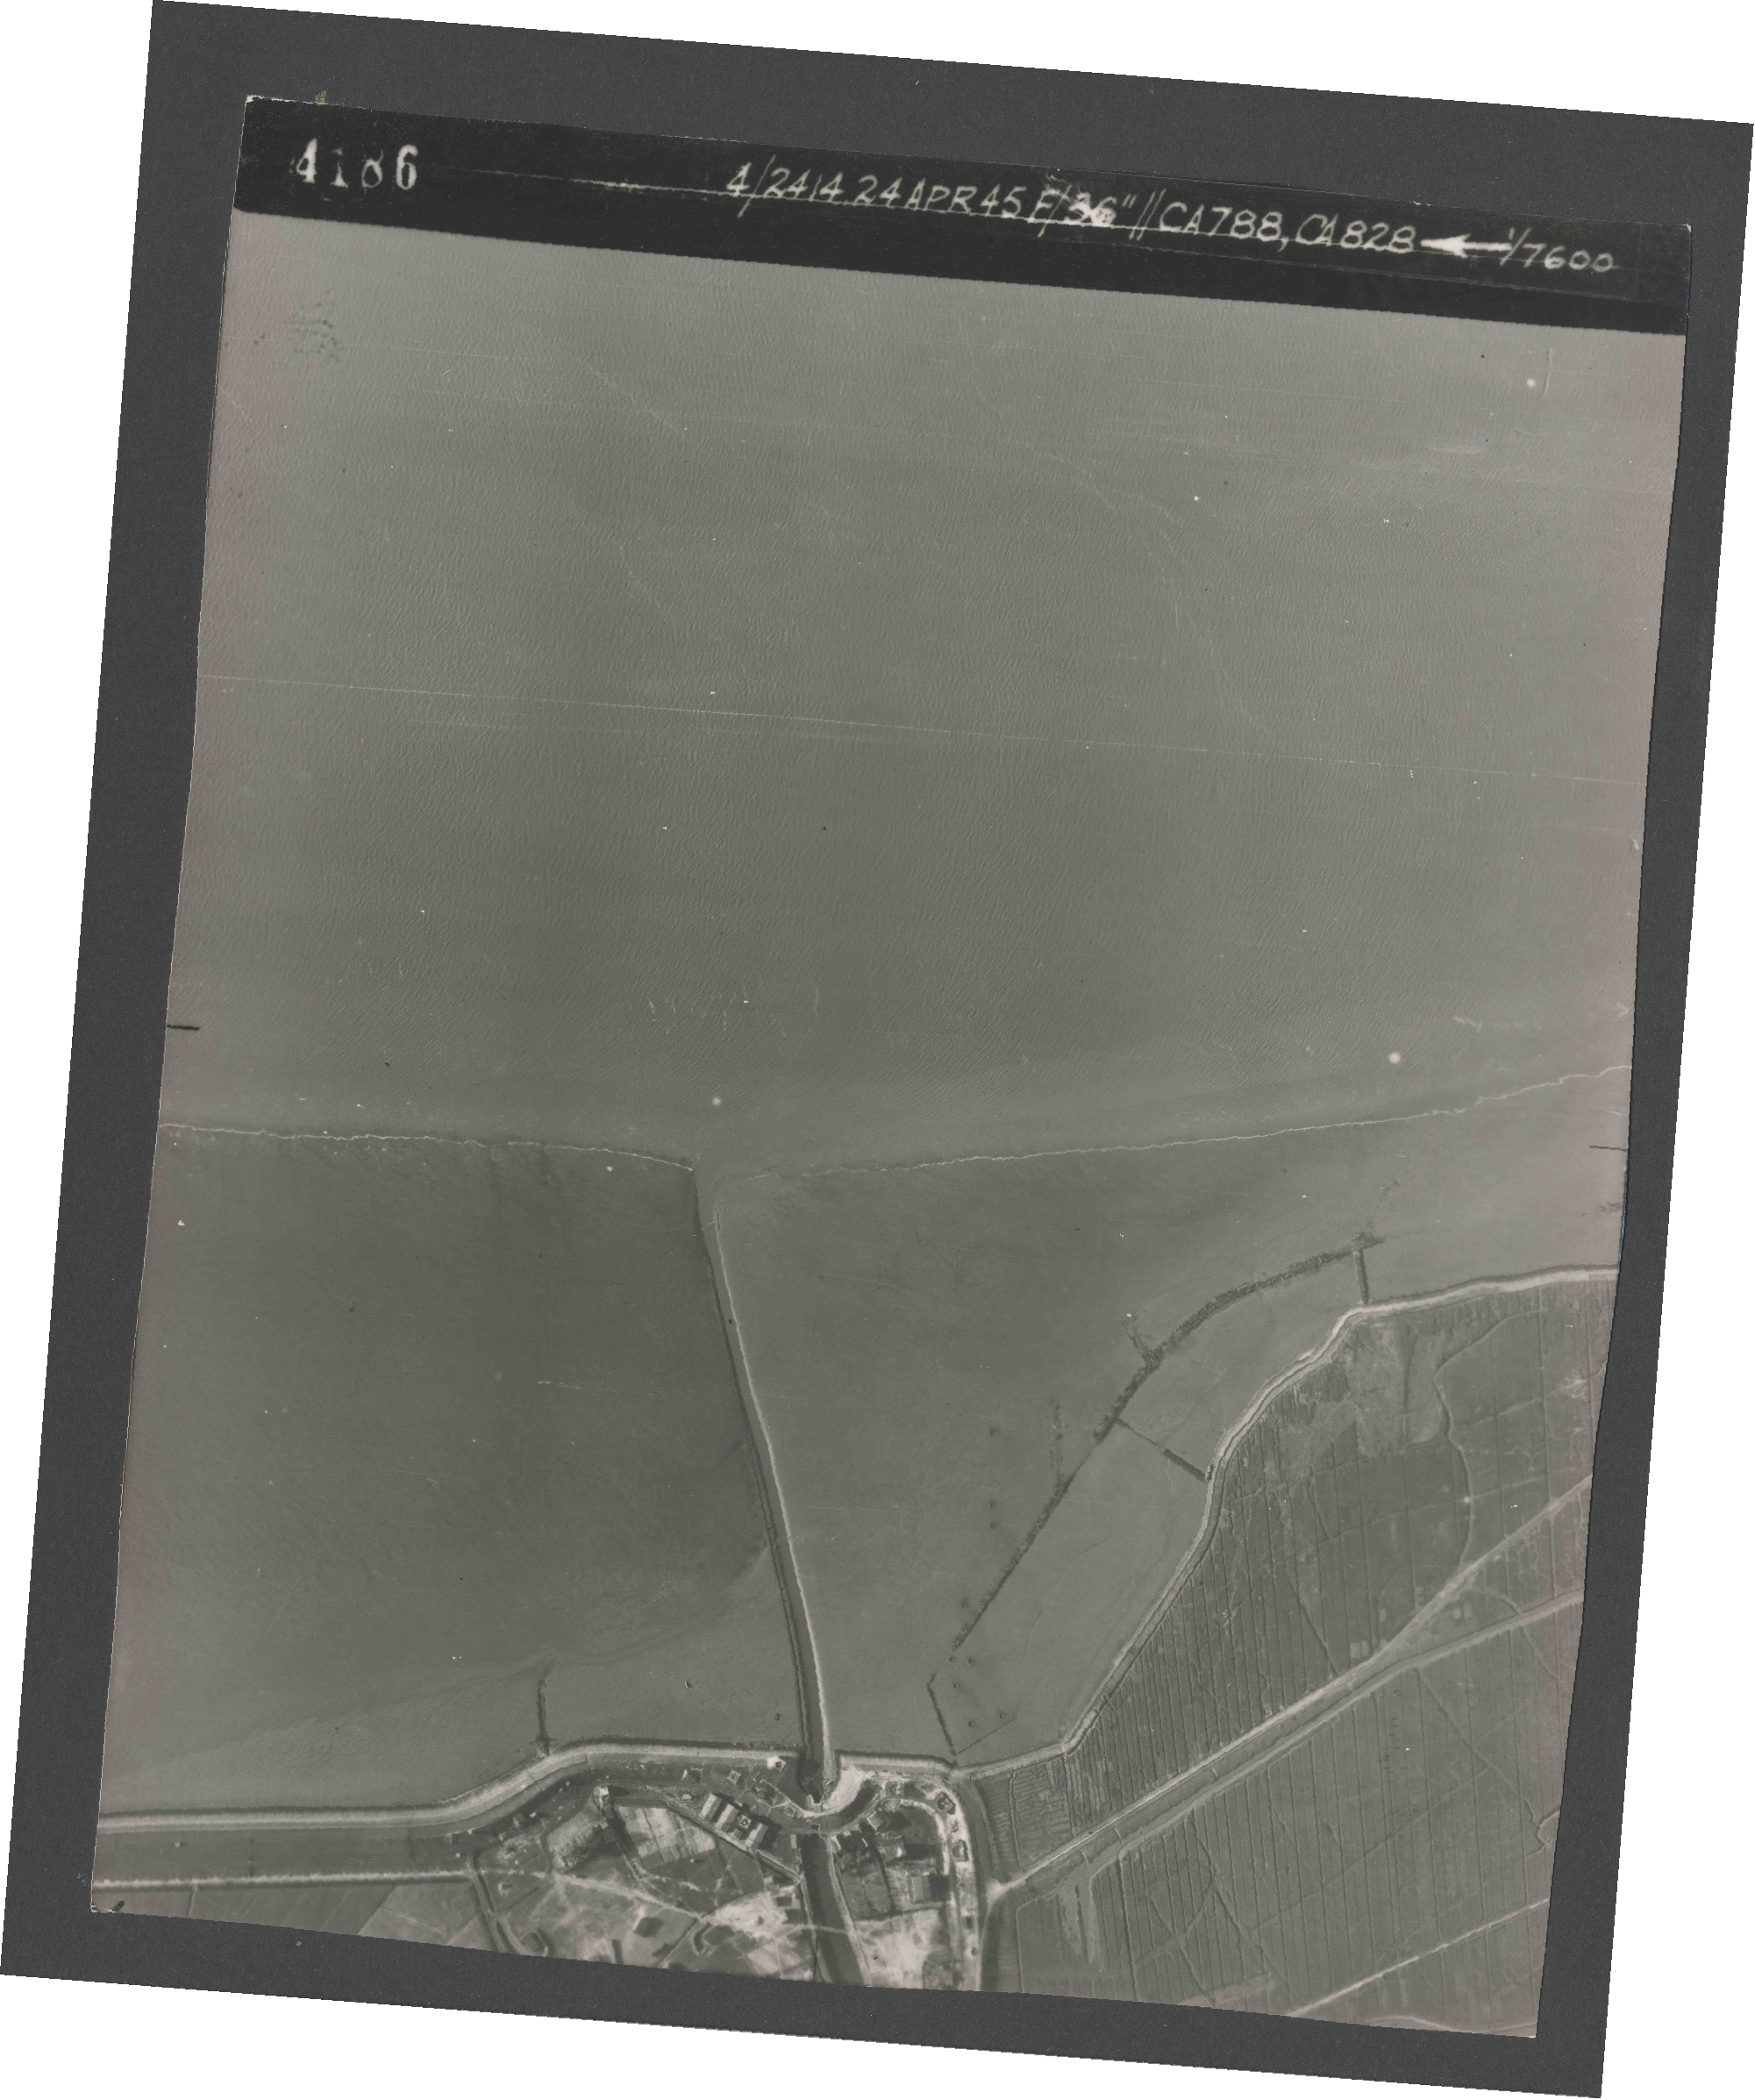 Collection RAF aerial photos 1940-1945 - flight 111, run 04, photo 4186